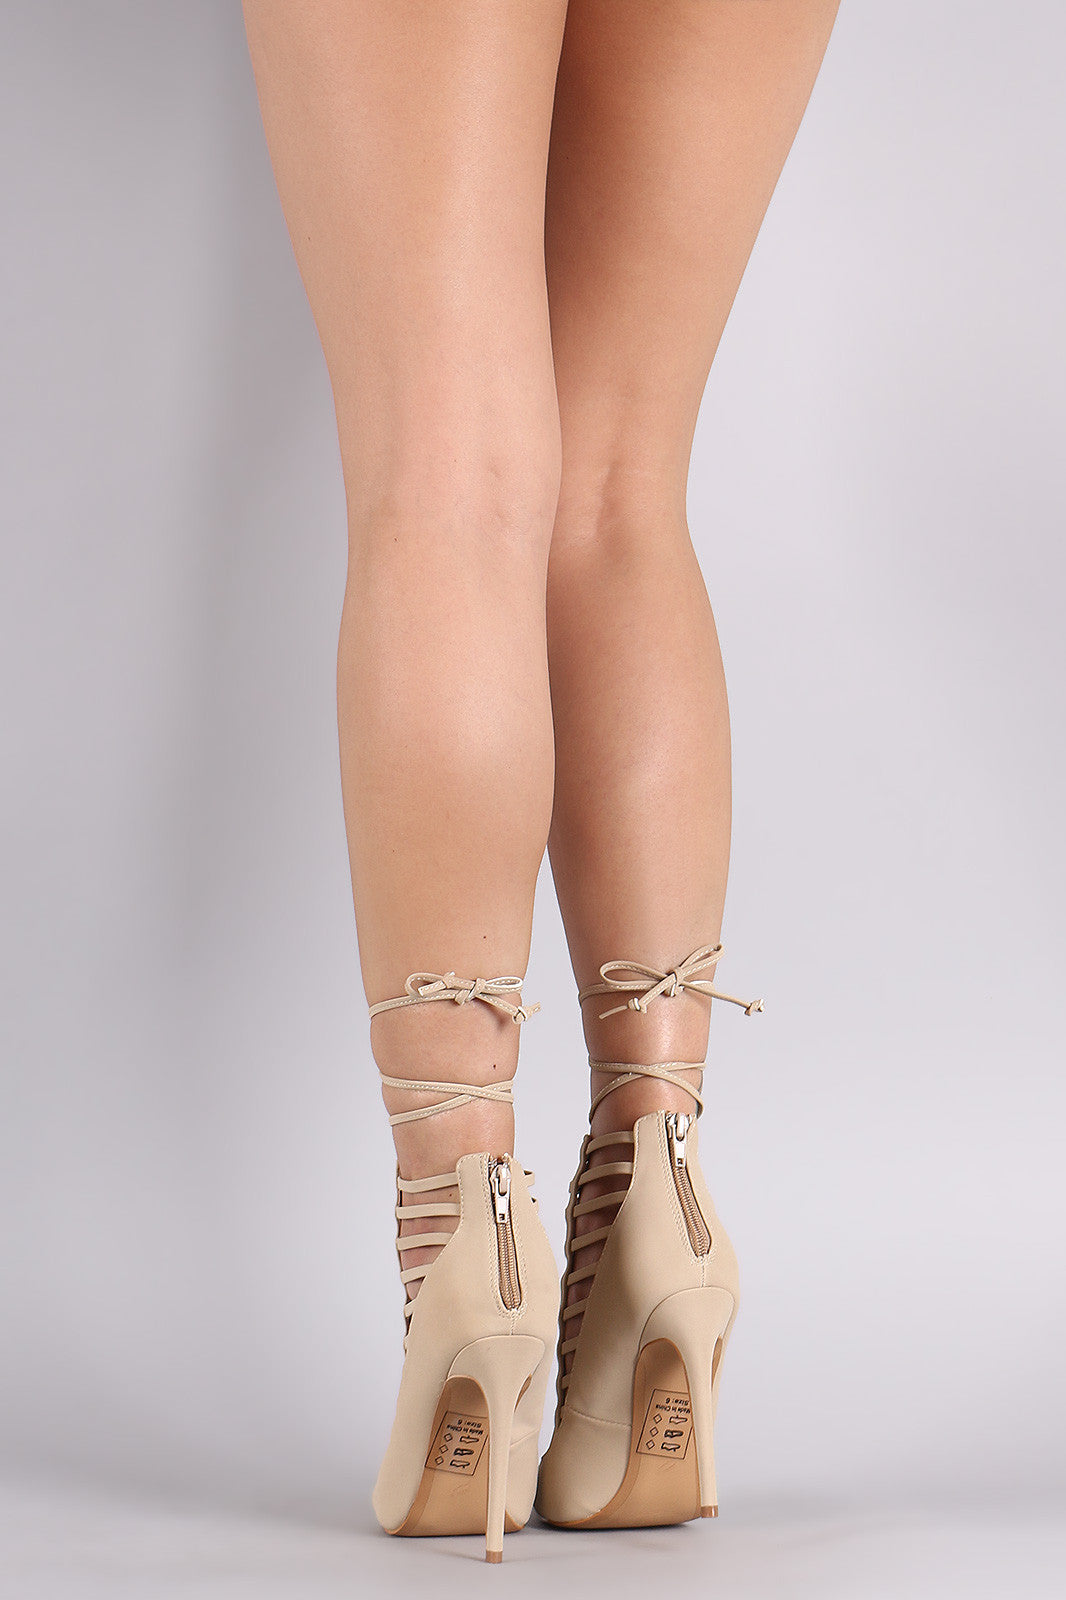 Shoe Republic LA Pointy Toe Caged Lace-Up Pump - Thick 'N' Curvy Shop - 5